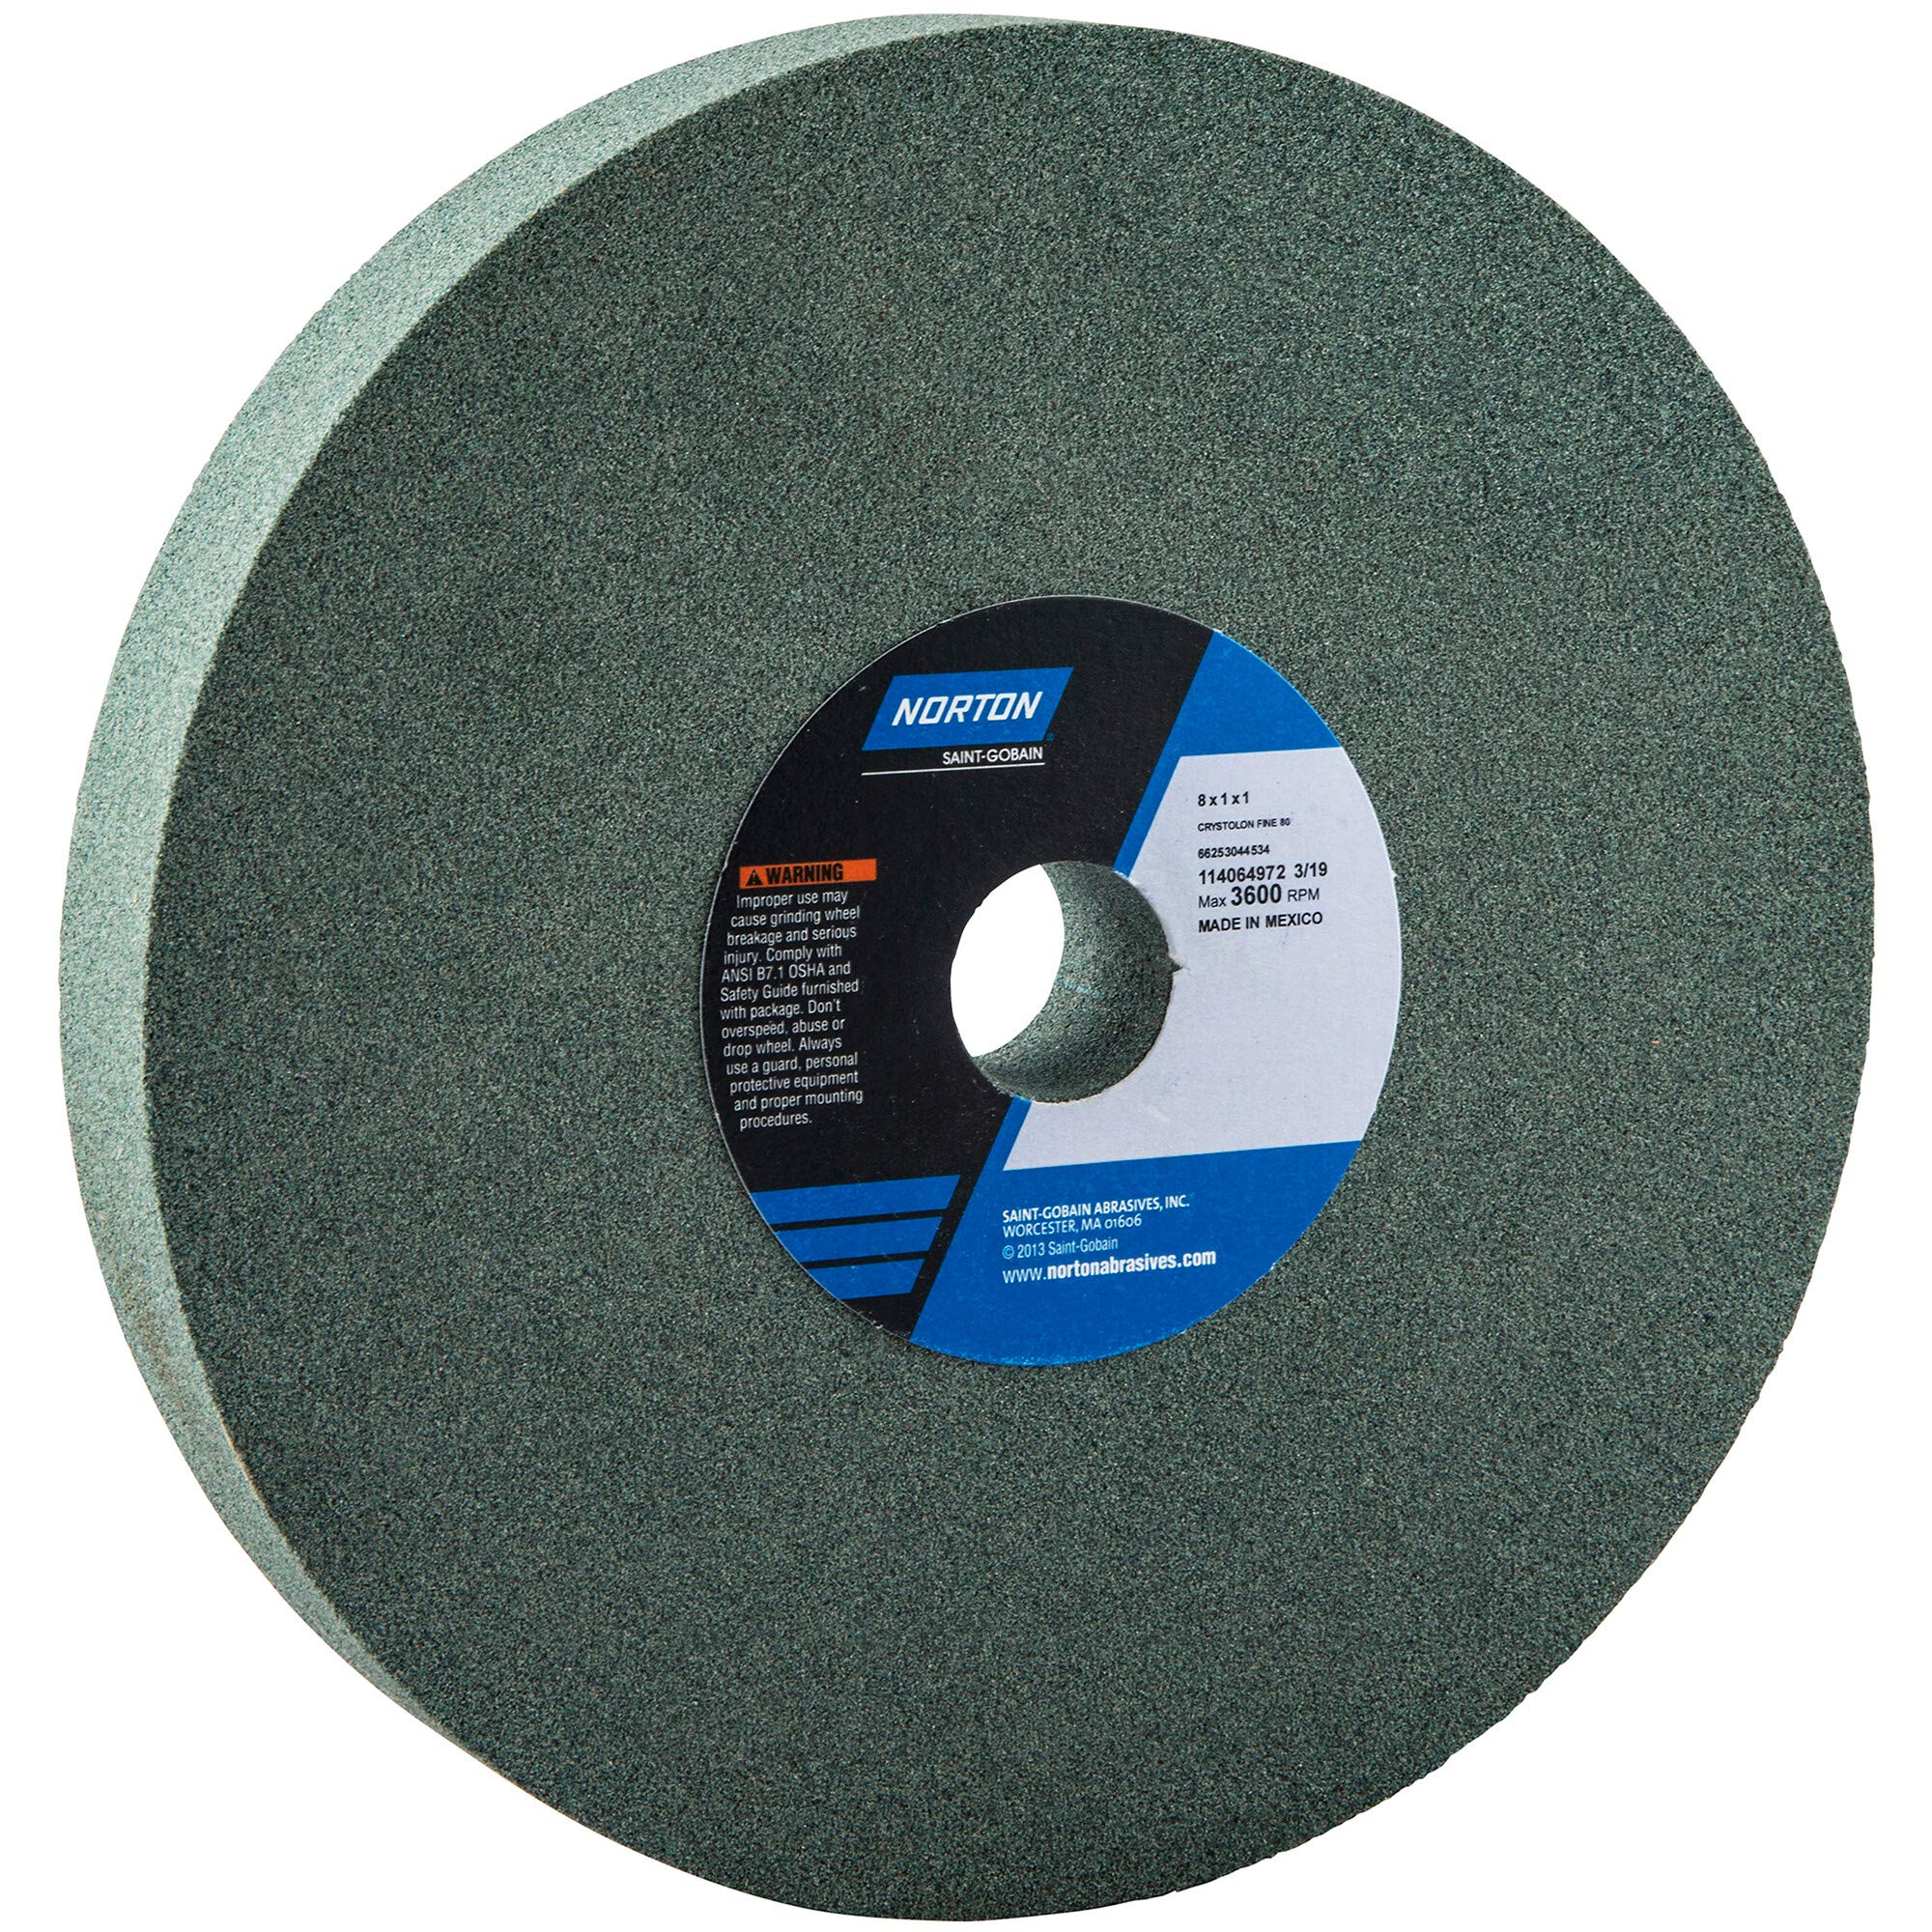 Norton Gemini Bench and Pedestal Abrasive Wheel, Type 01 Straight, Silicon Carbide, 1'' Arbor, 8'' Diameter, 1'' Thickness, 80 Grit (Pack of 1) by Norton Abrasives - St. Gobain